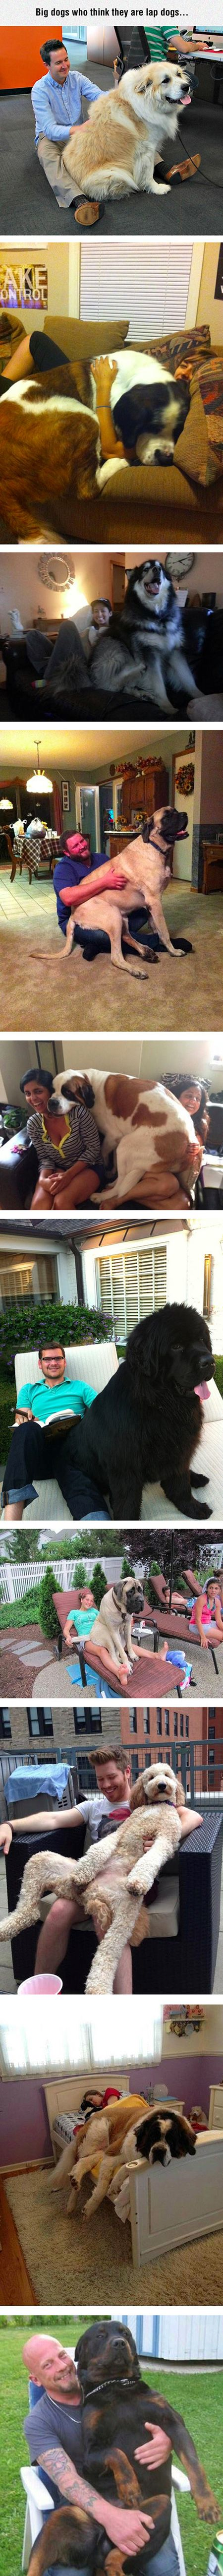 10 gigantic dogs who still think they are puppies.